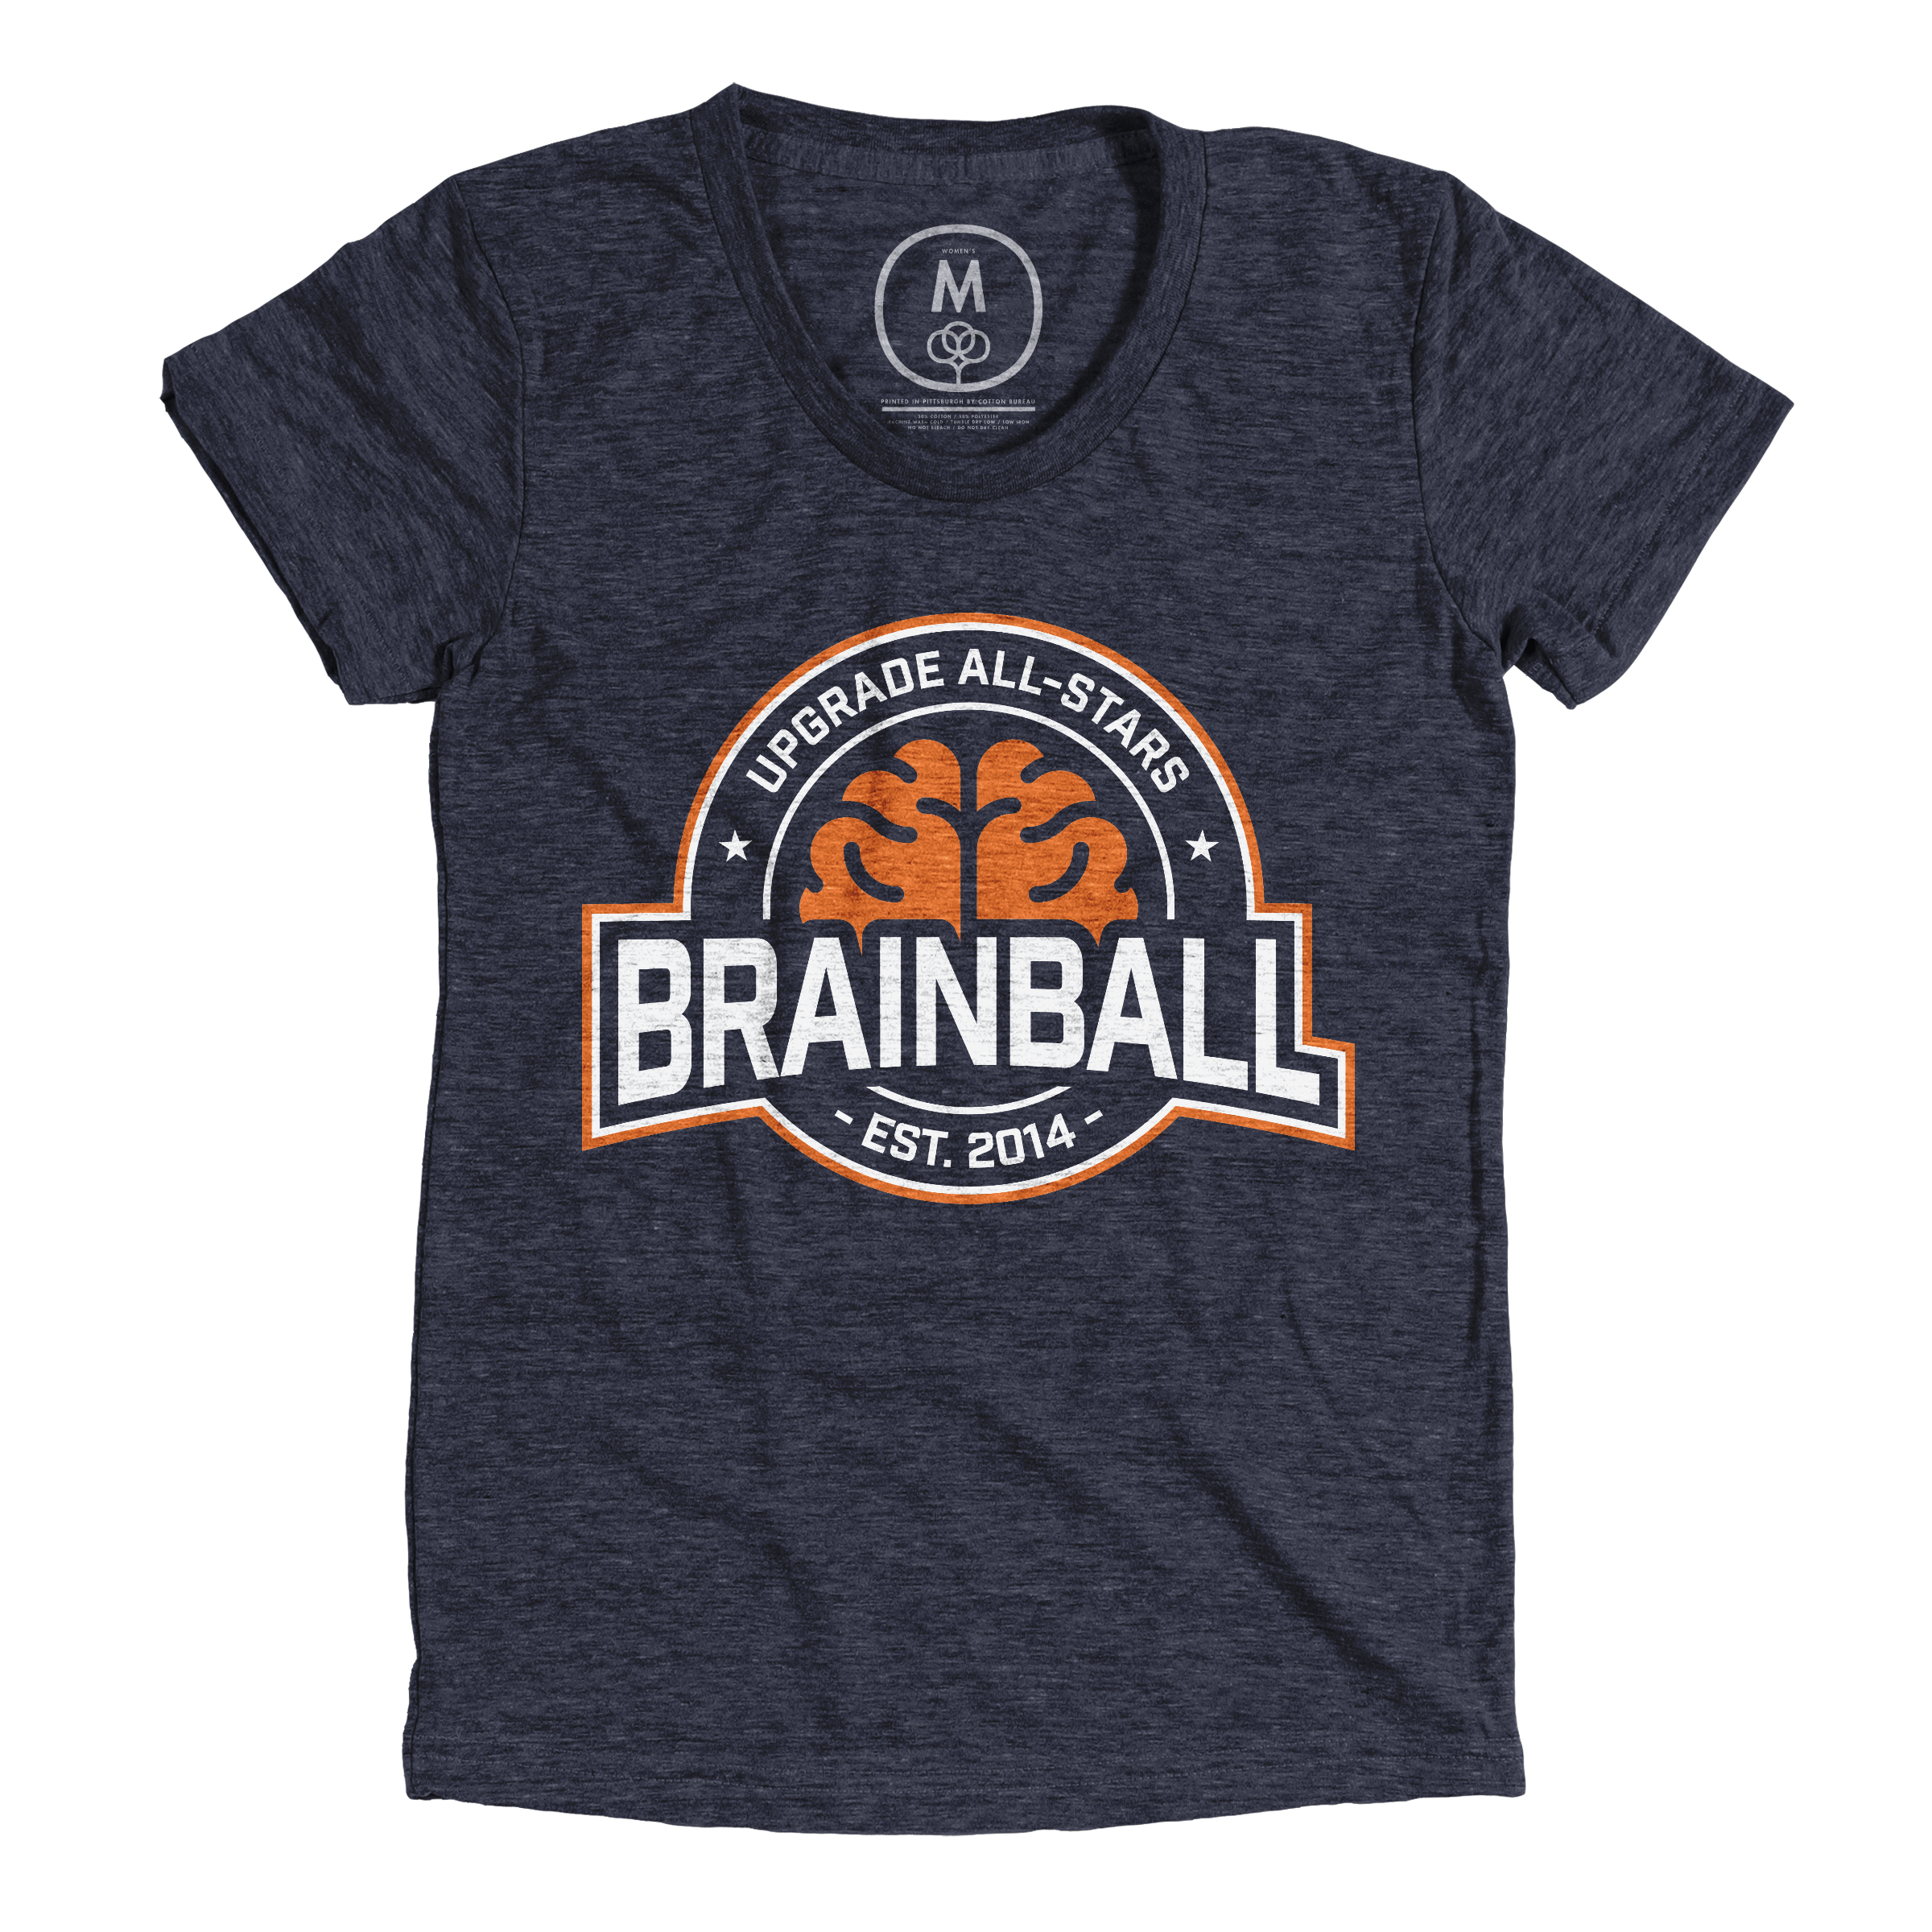 Upgrade Brainball All-Stars Vintage Navy (Women's)